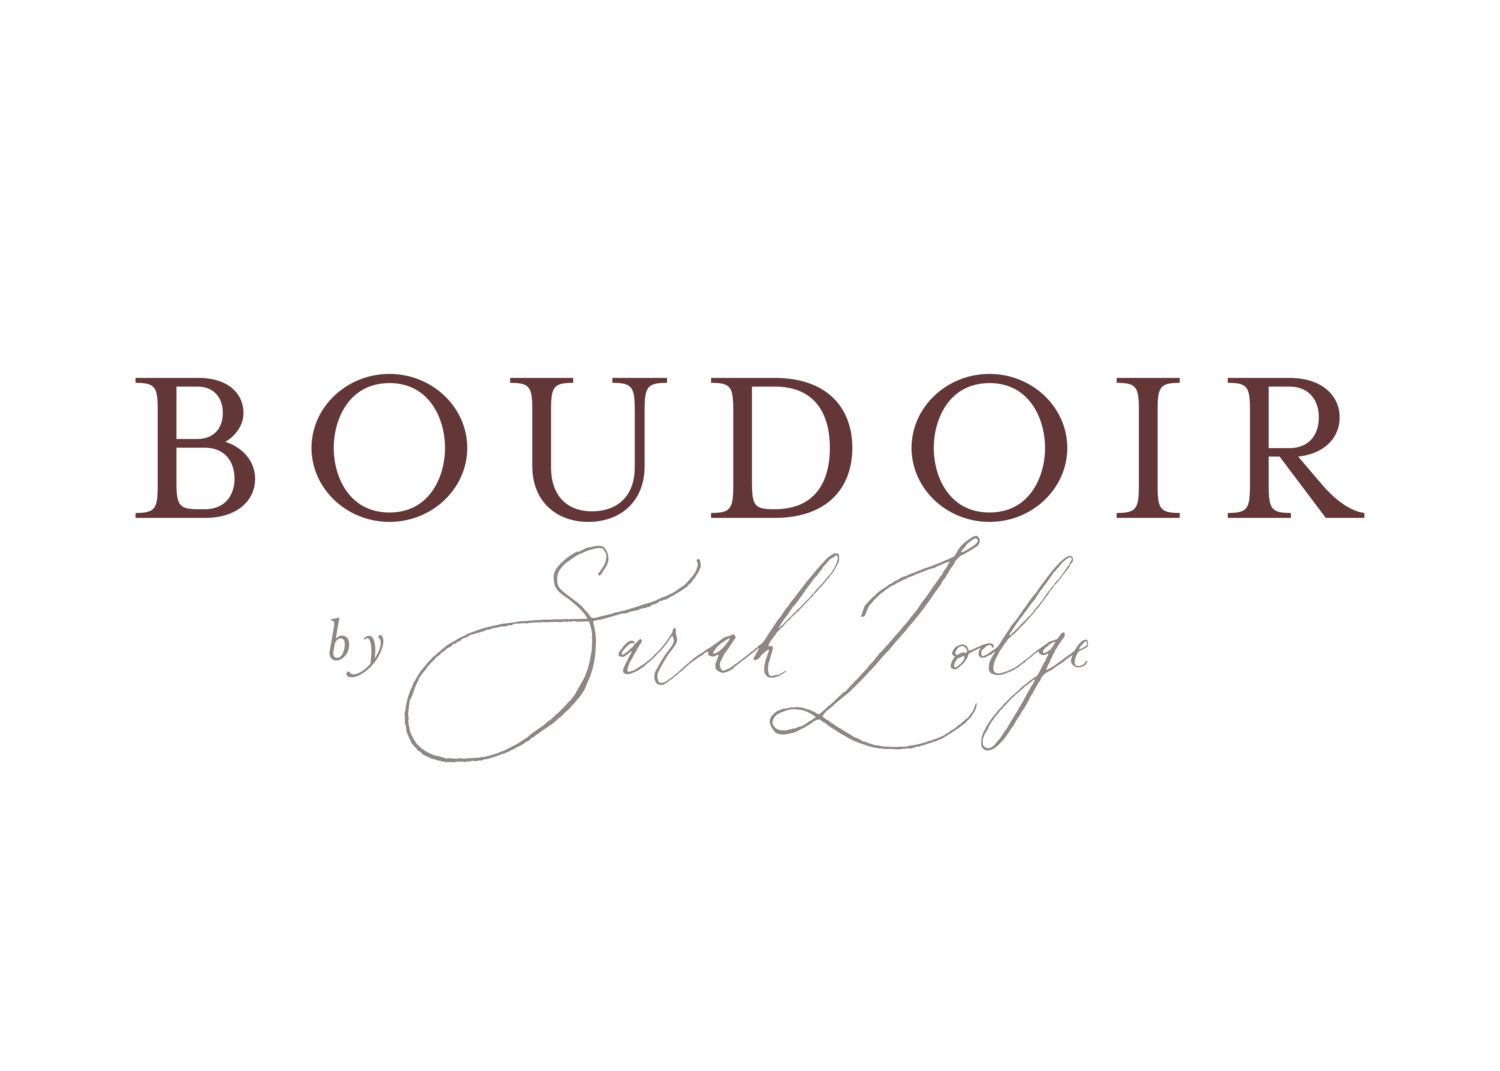 Boudoir by Sarah Lodge